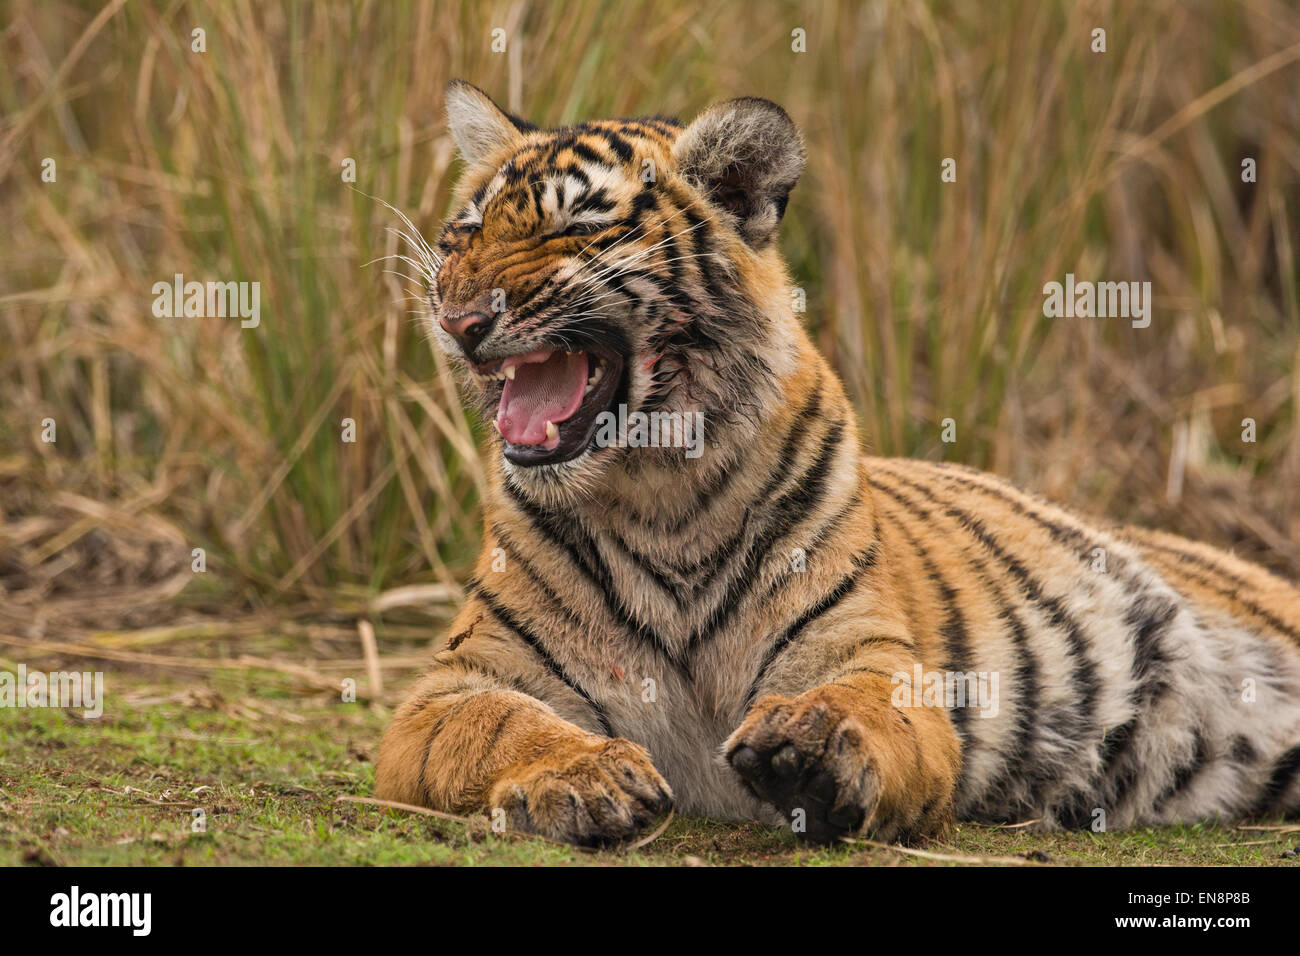 Sub adult tiger resting on a grassy patch of ground in Ranthambhore - Stock Image